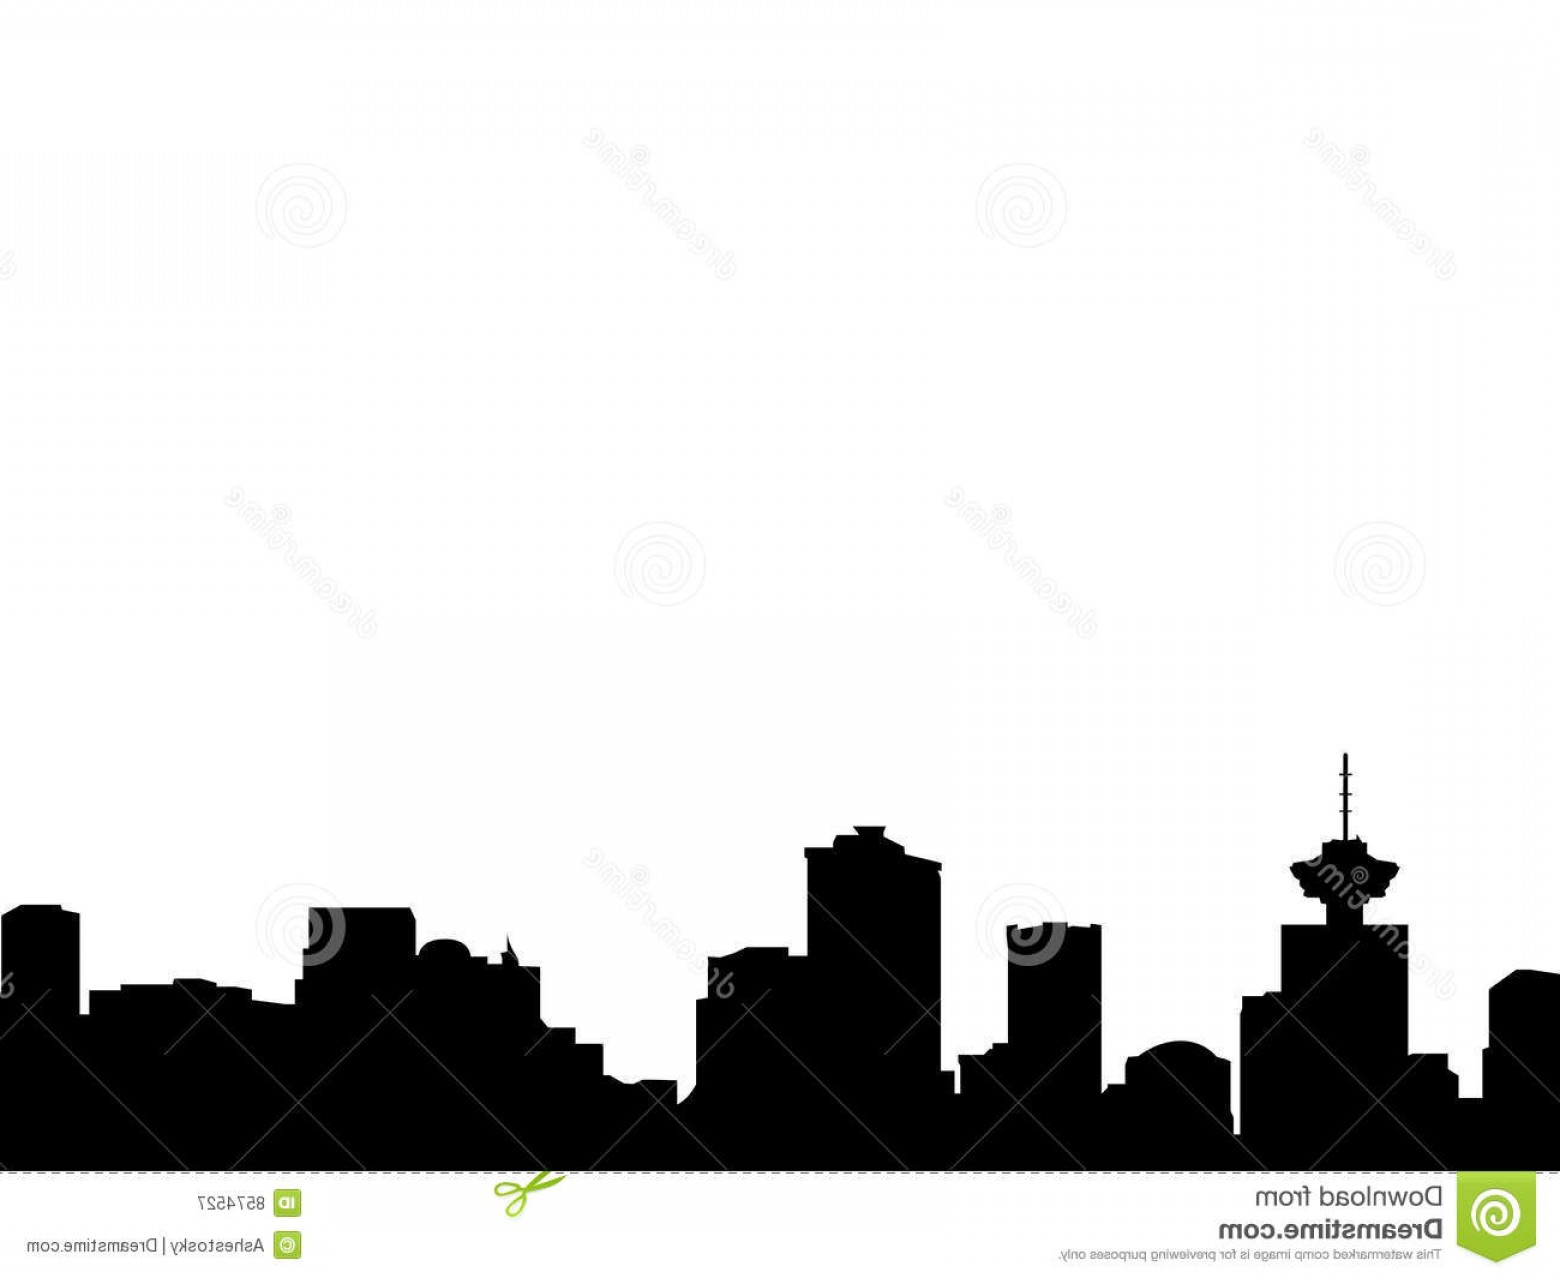 Vancouver Skyline Vector: Royalty Free Stock Photography Vancouver Skyline Silhouette Image